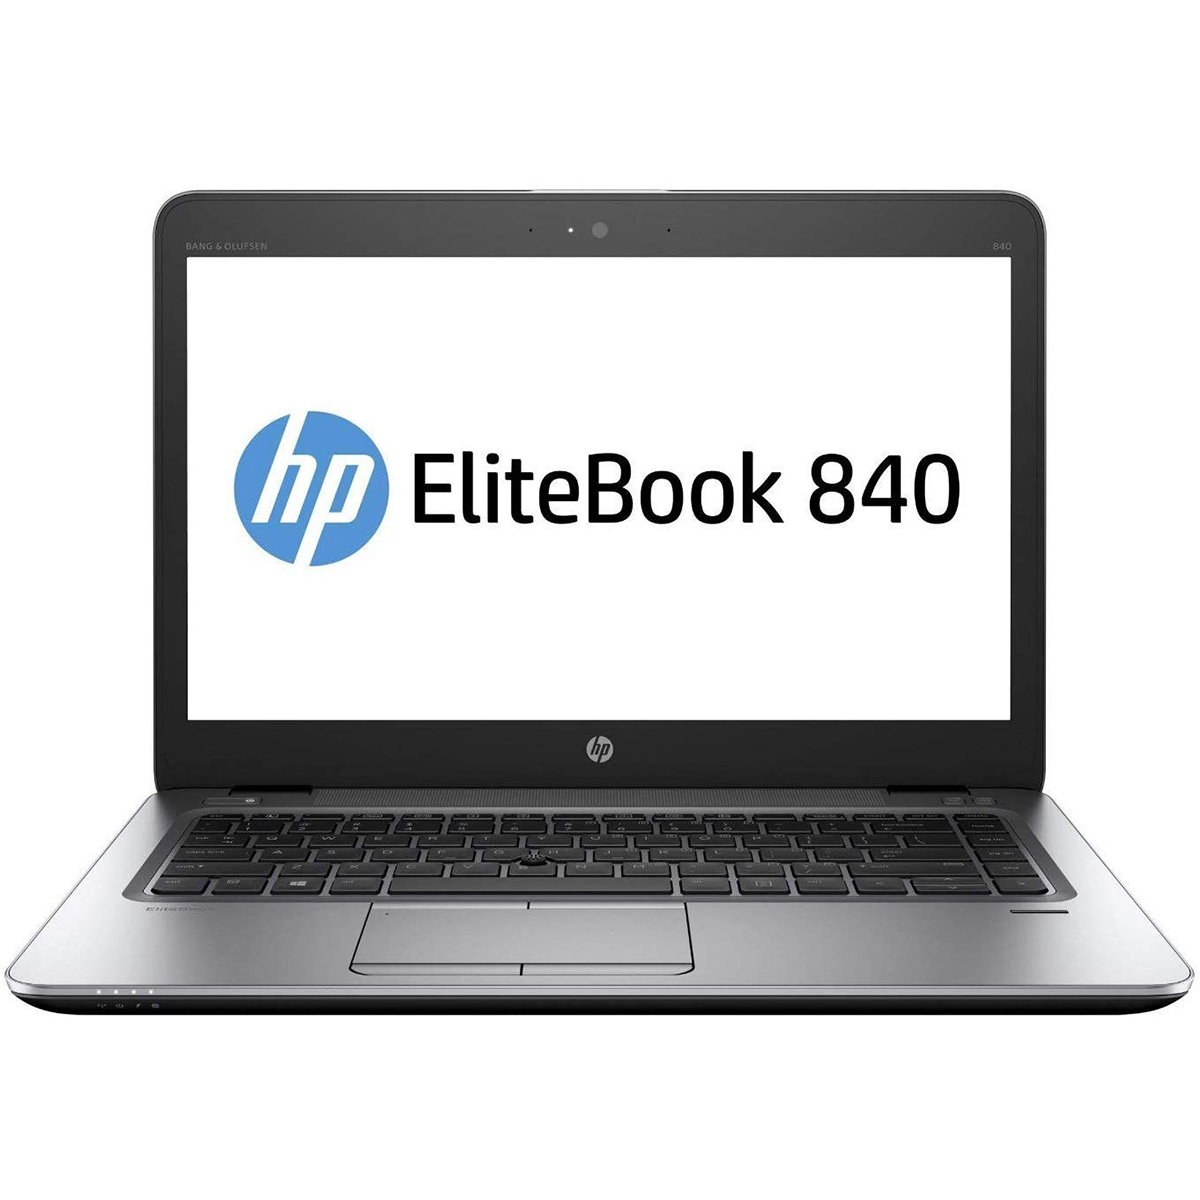 HP ELITEBOOK 840 G3 Ultrabook